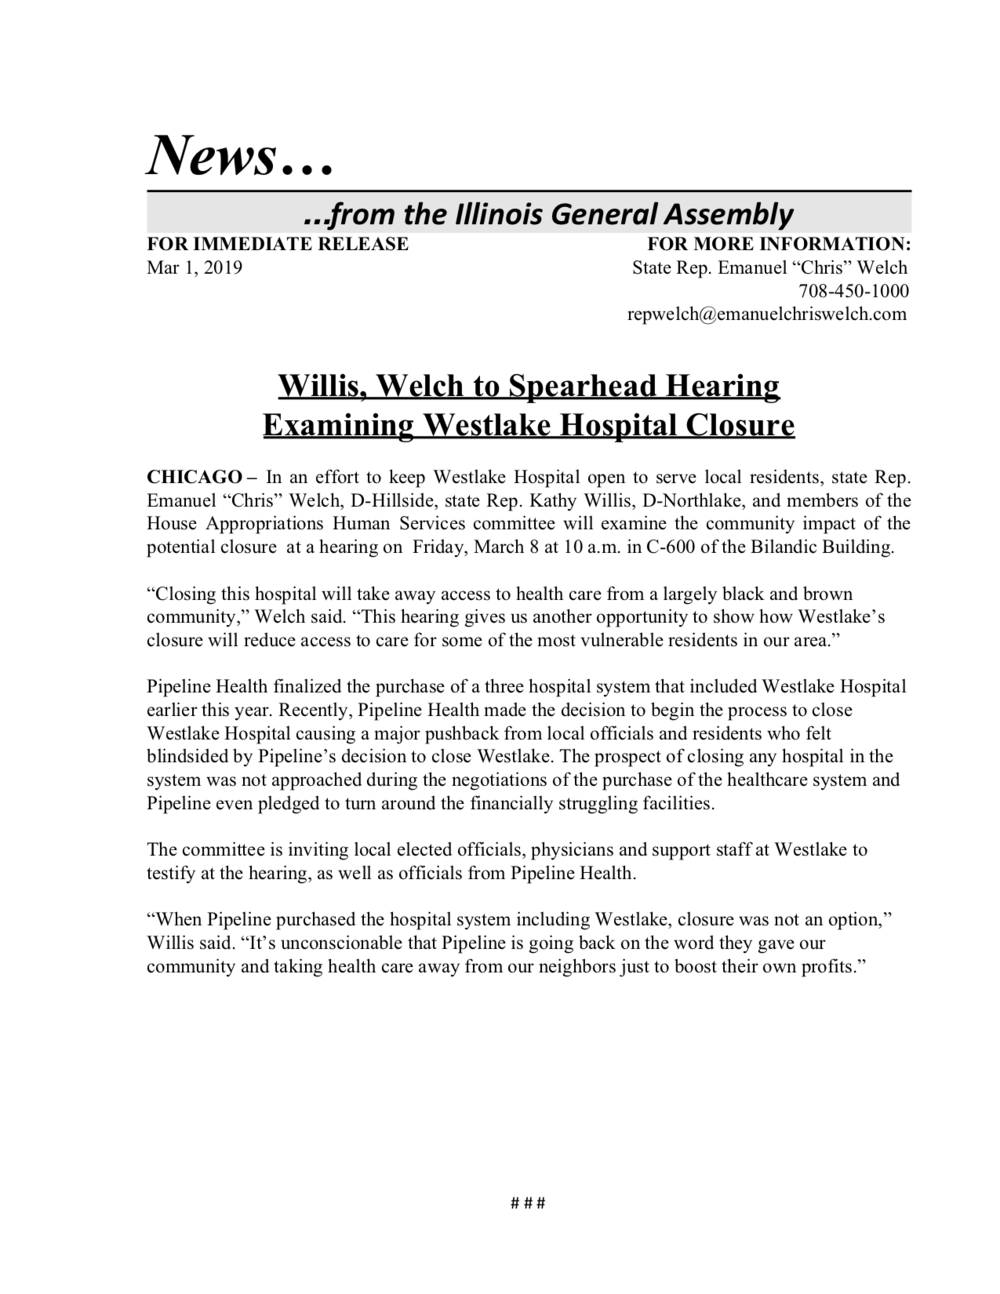 Willis, Welch to Spearhead Hearing Examining Westlake Hospital Closure  (March 1, 2019)